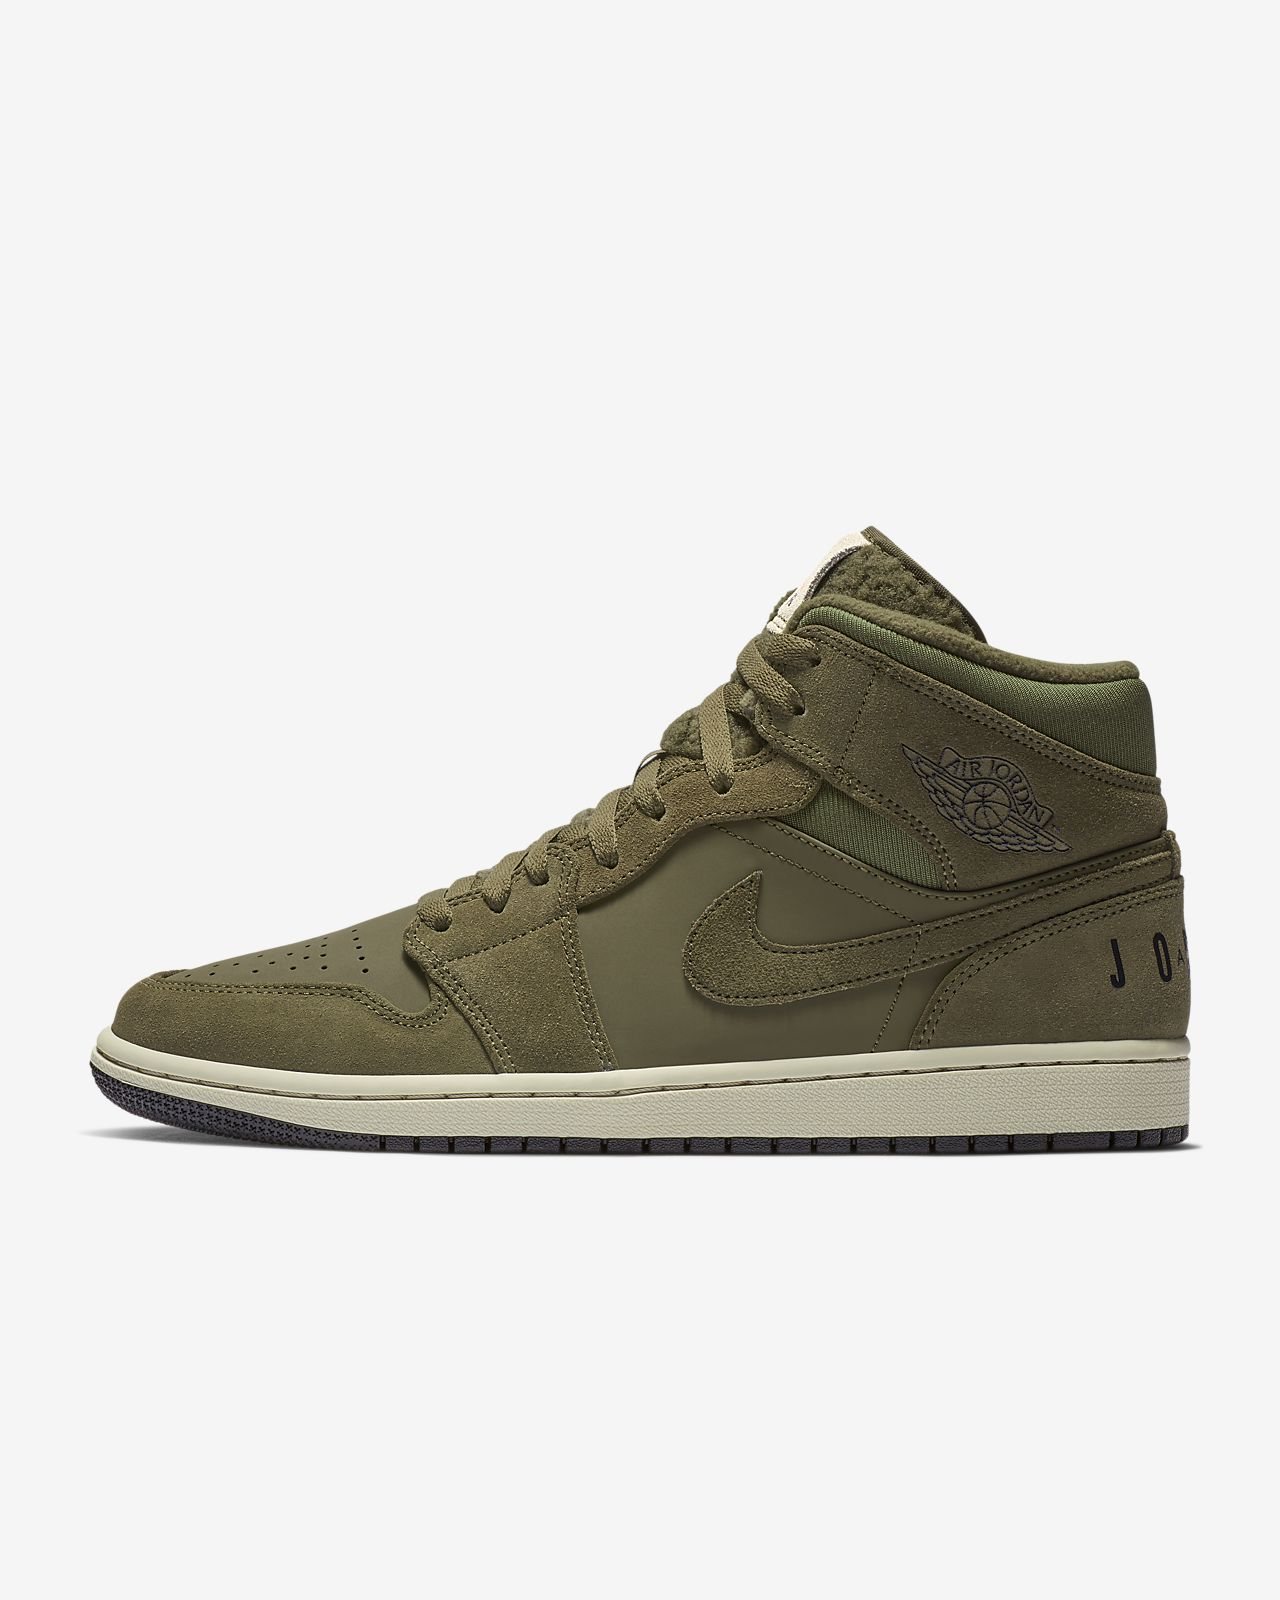 Air Jordan 1 Mid Premium Men's Shoe